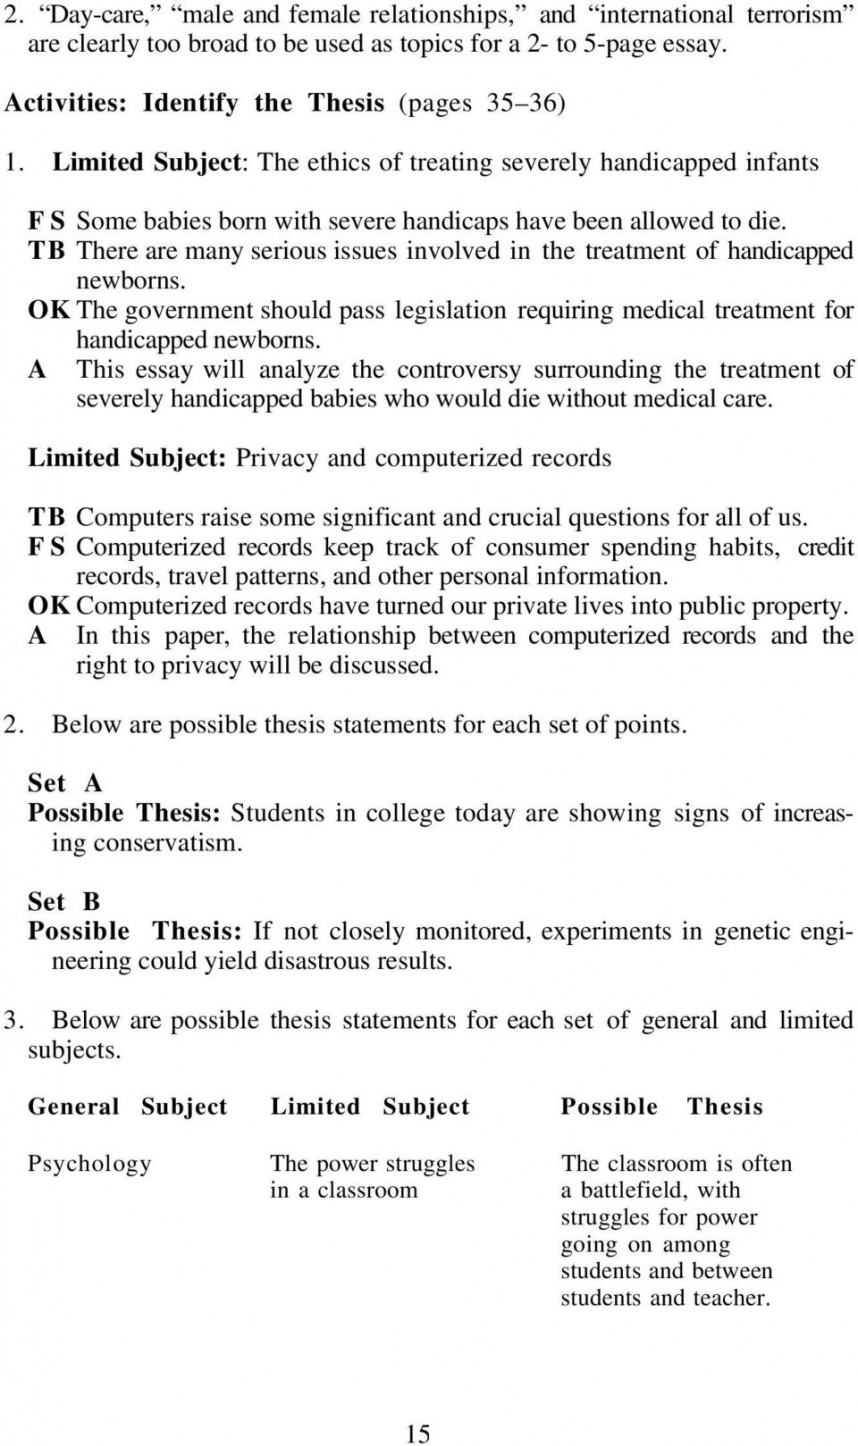 023 Page 20 Research Paper Argumentative Topics About Mental Rare Illness Health